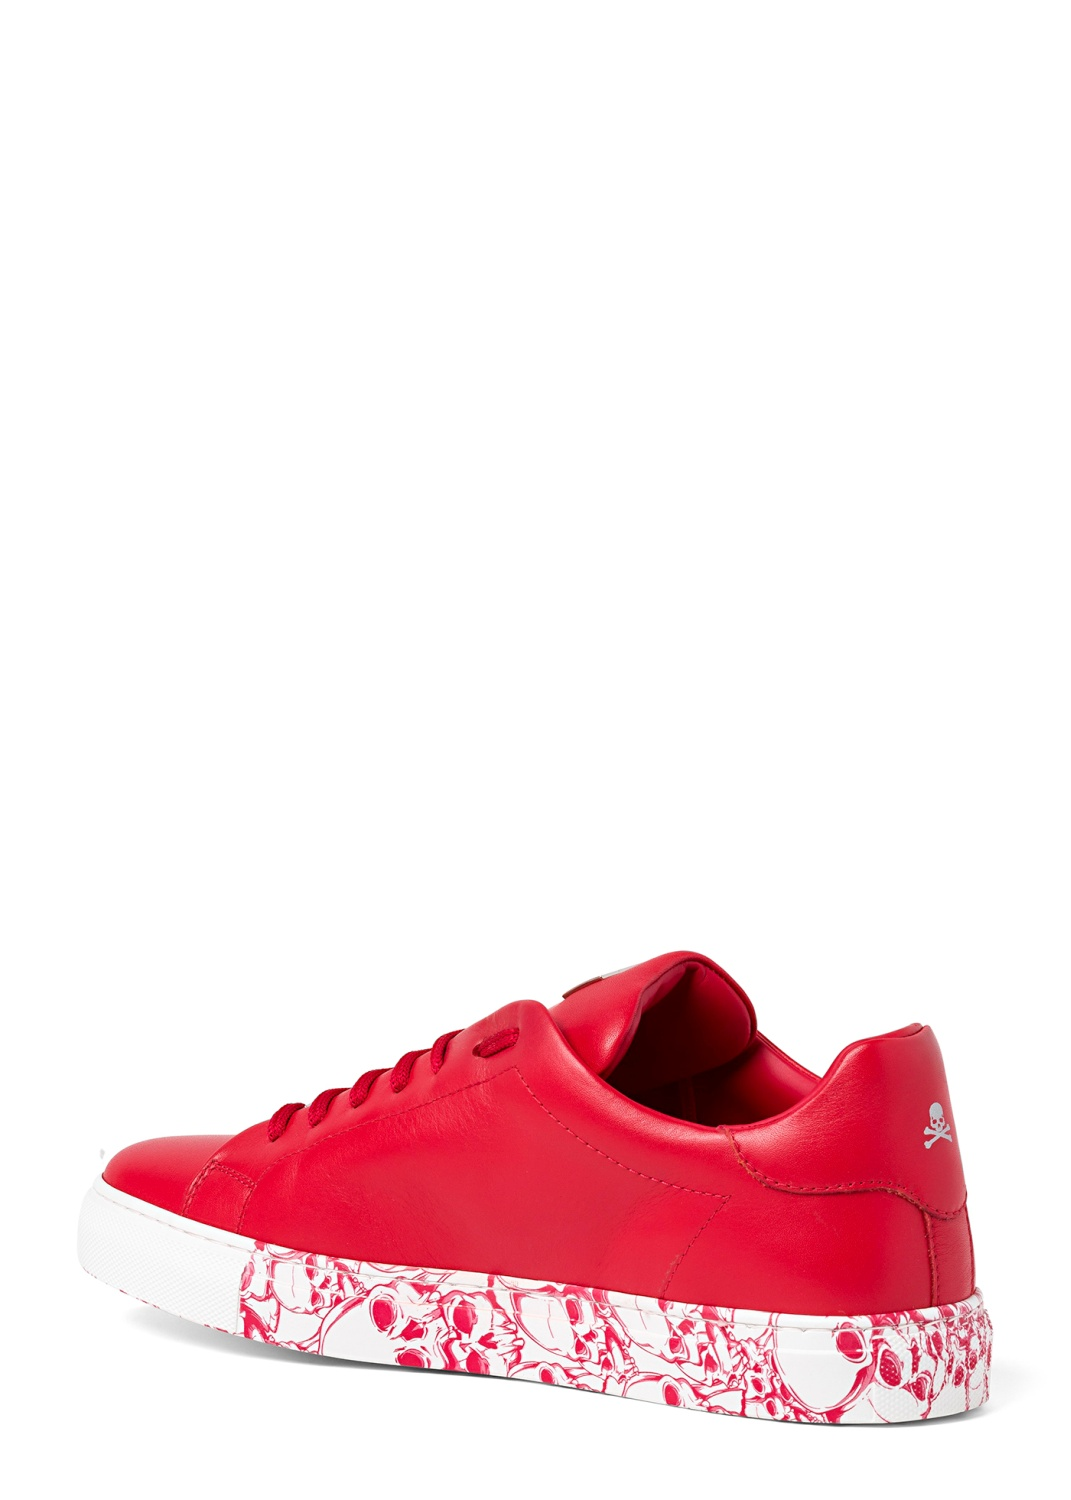 Lo-Top Sneakers hexagon and Skull image number 2